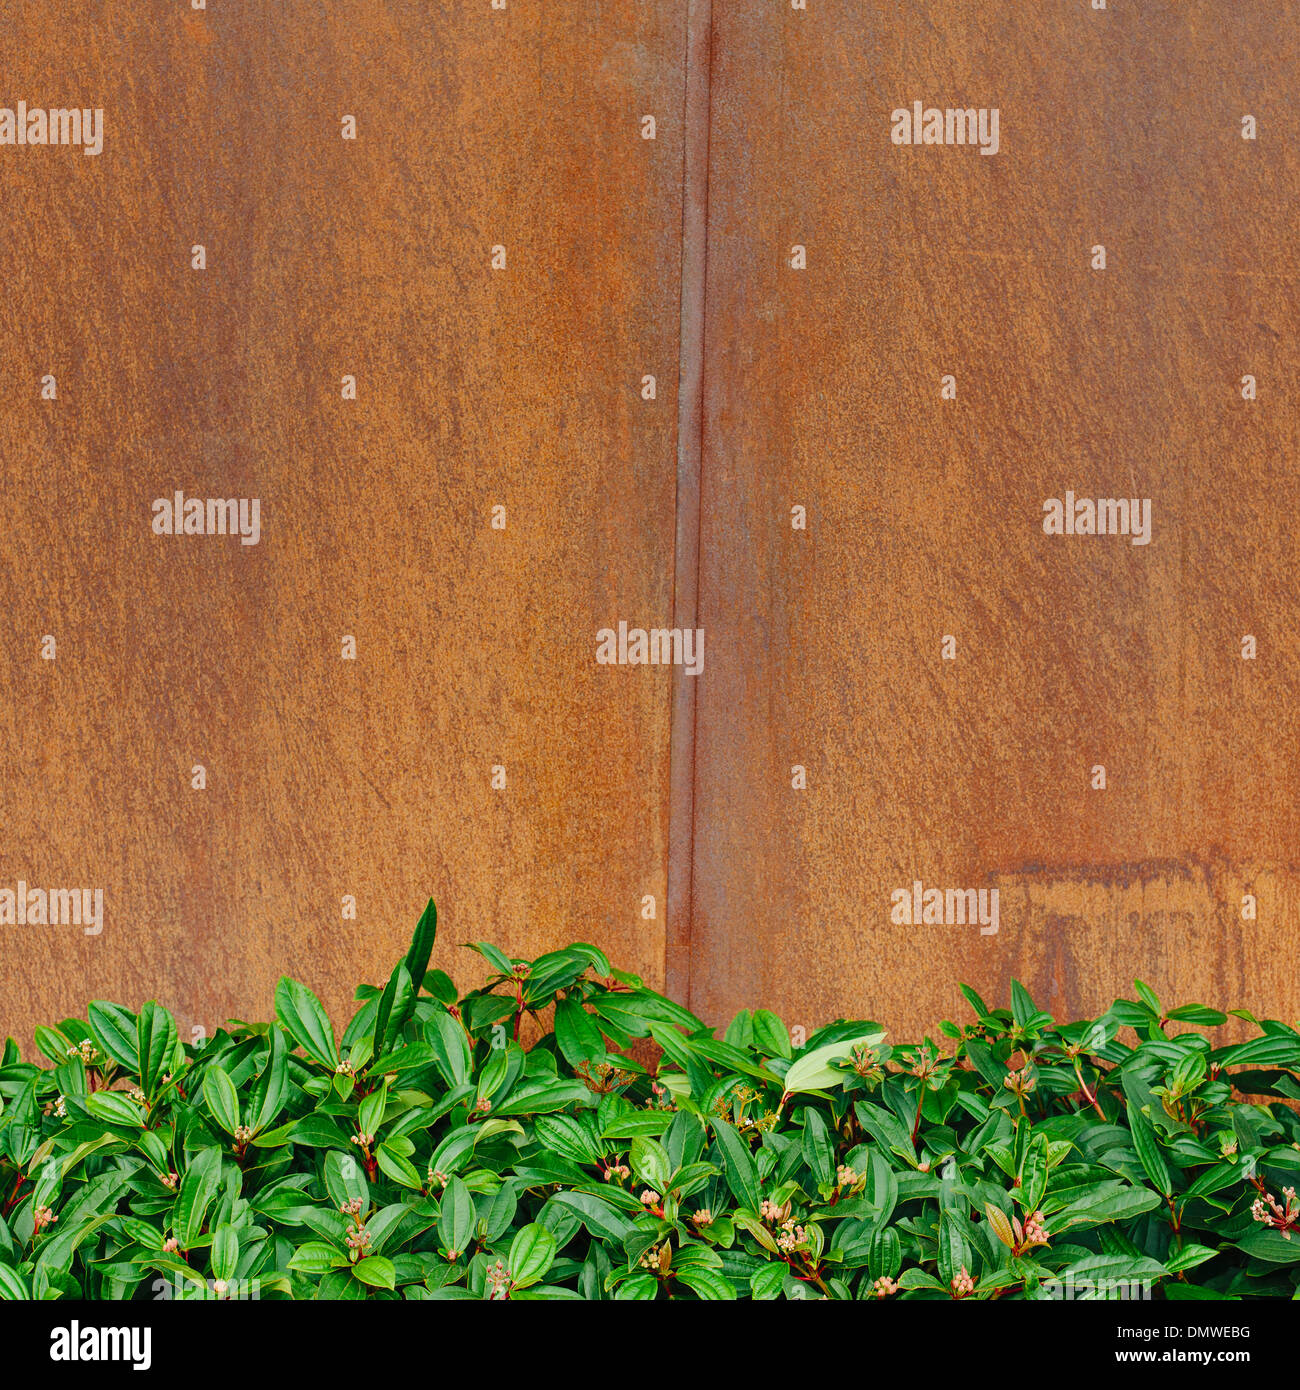 Glossy green leaves of Rhododendrons against a rusty metal wall. - Stock Image